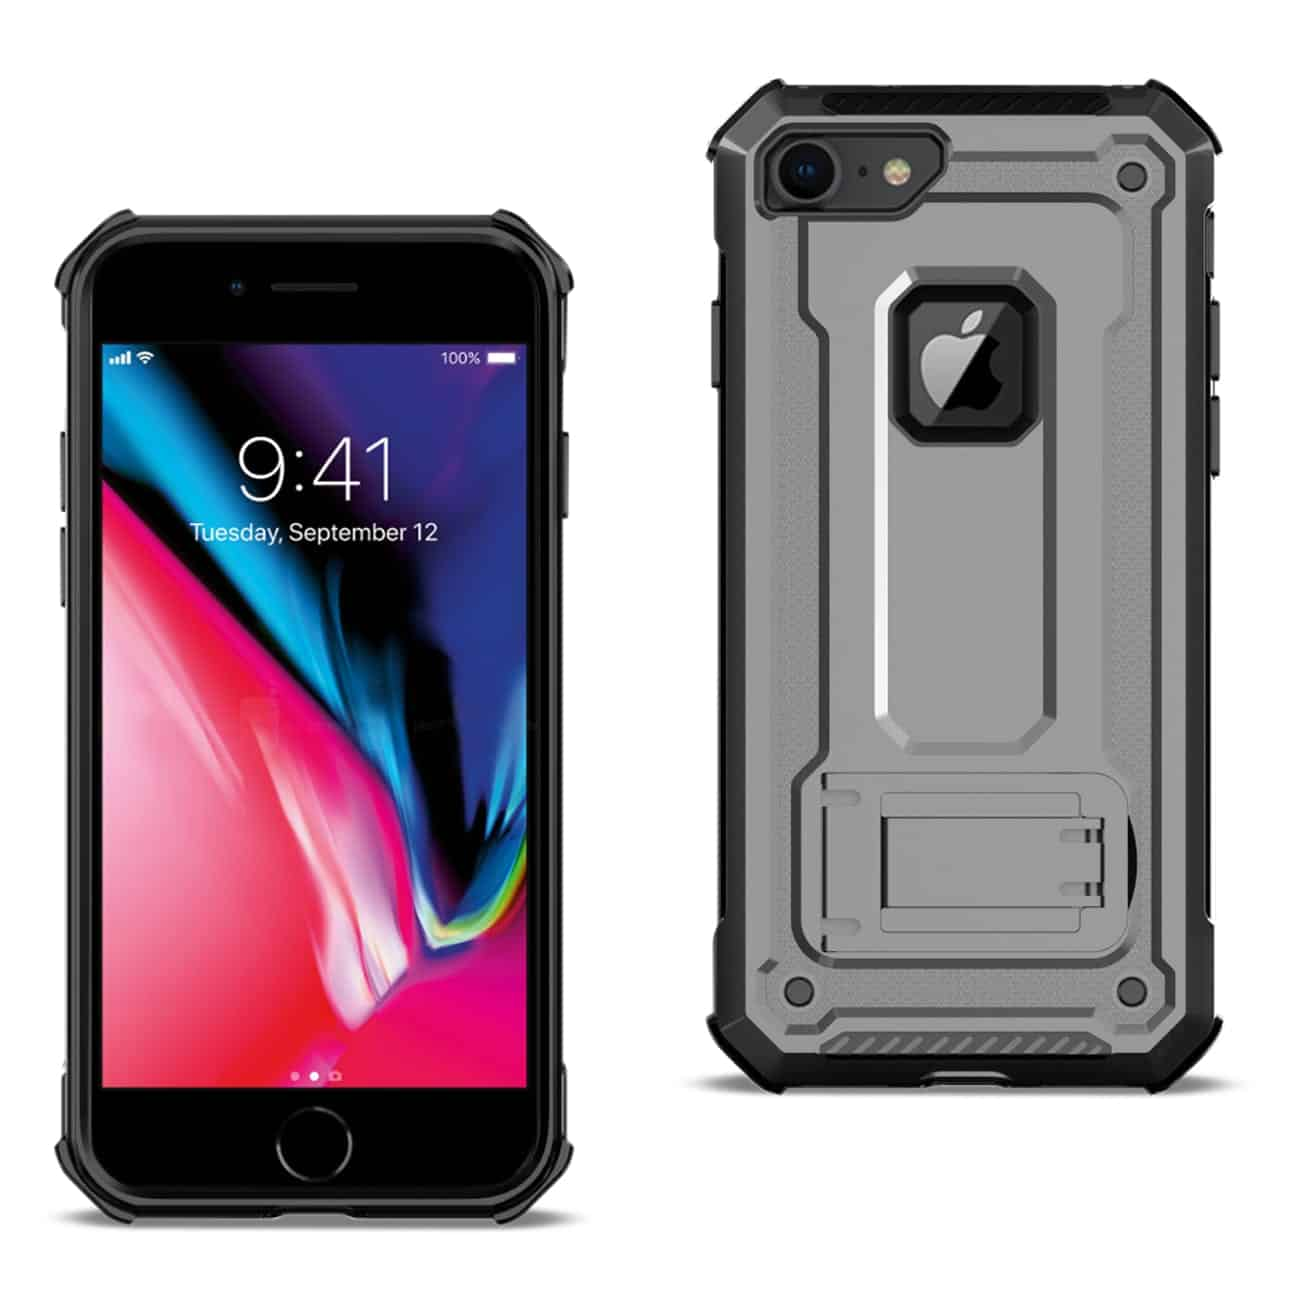 APPLE IPHONE 8 Case With Kickstand In Gray